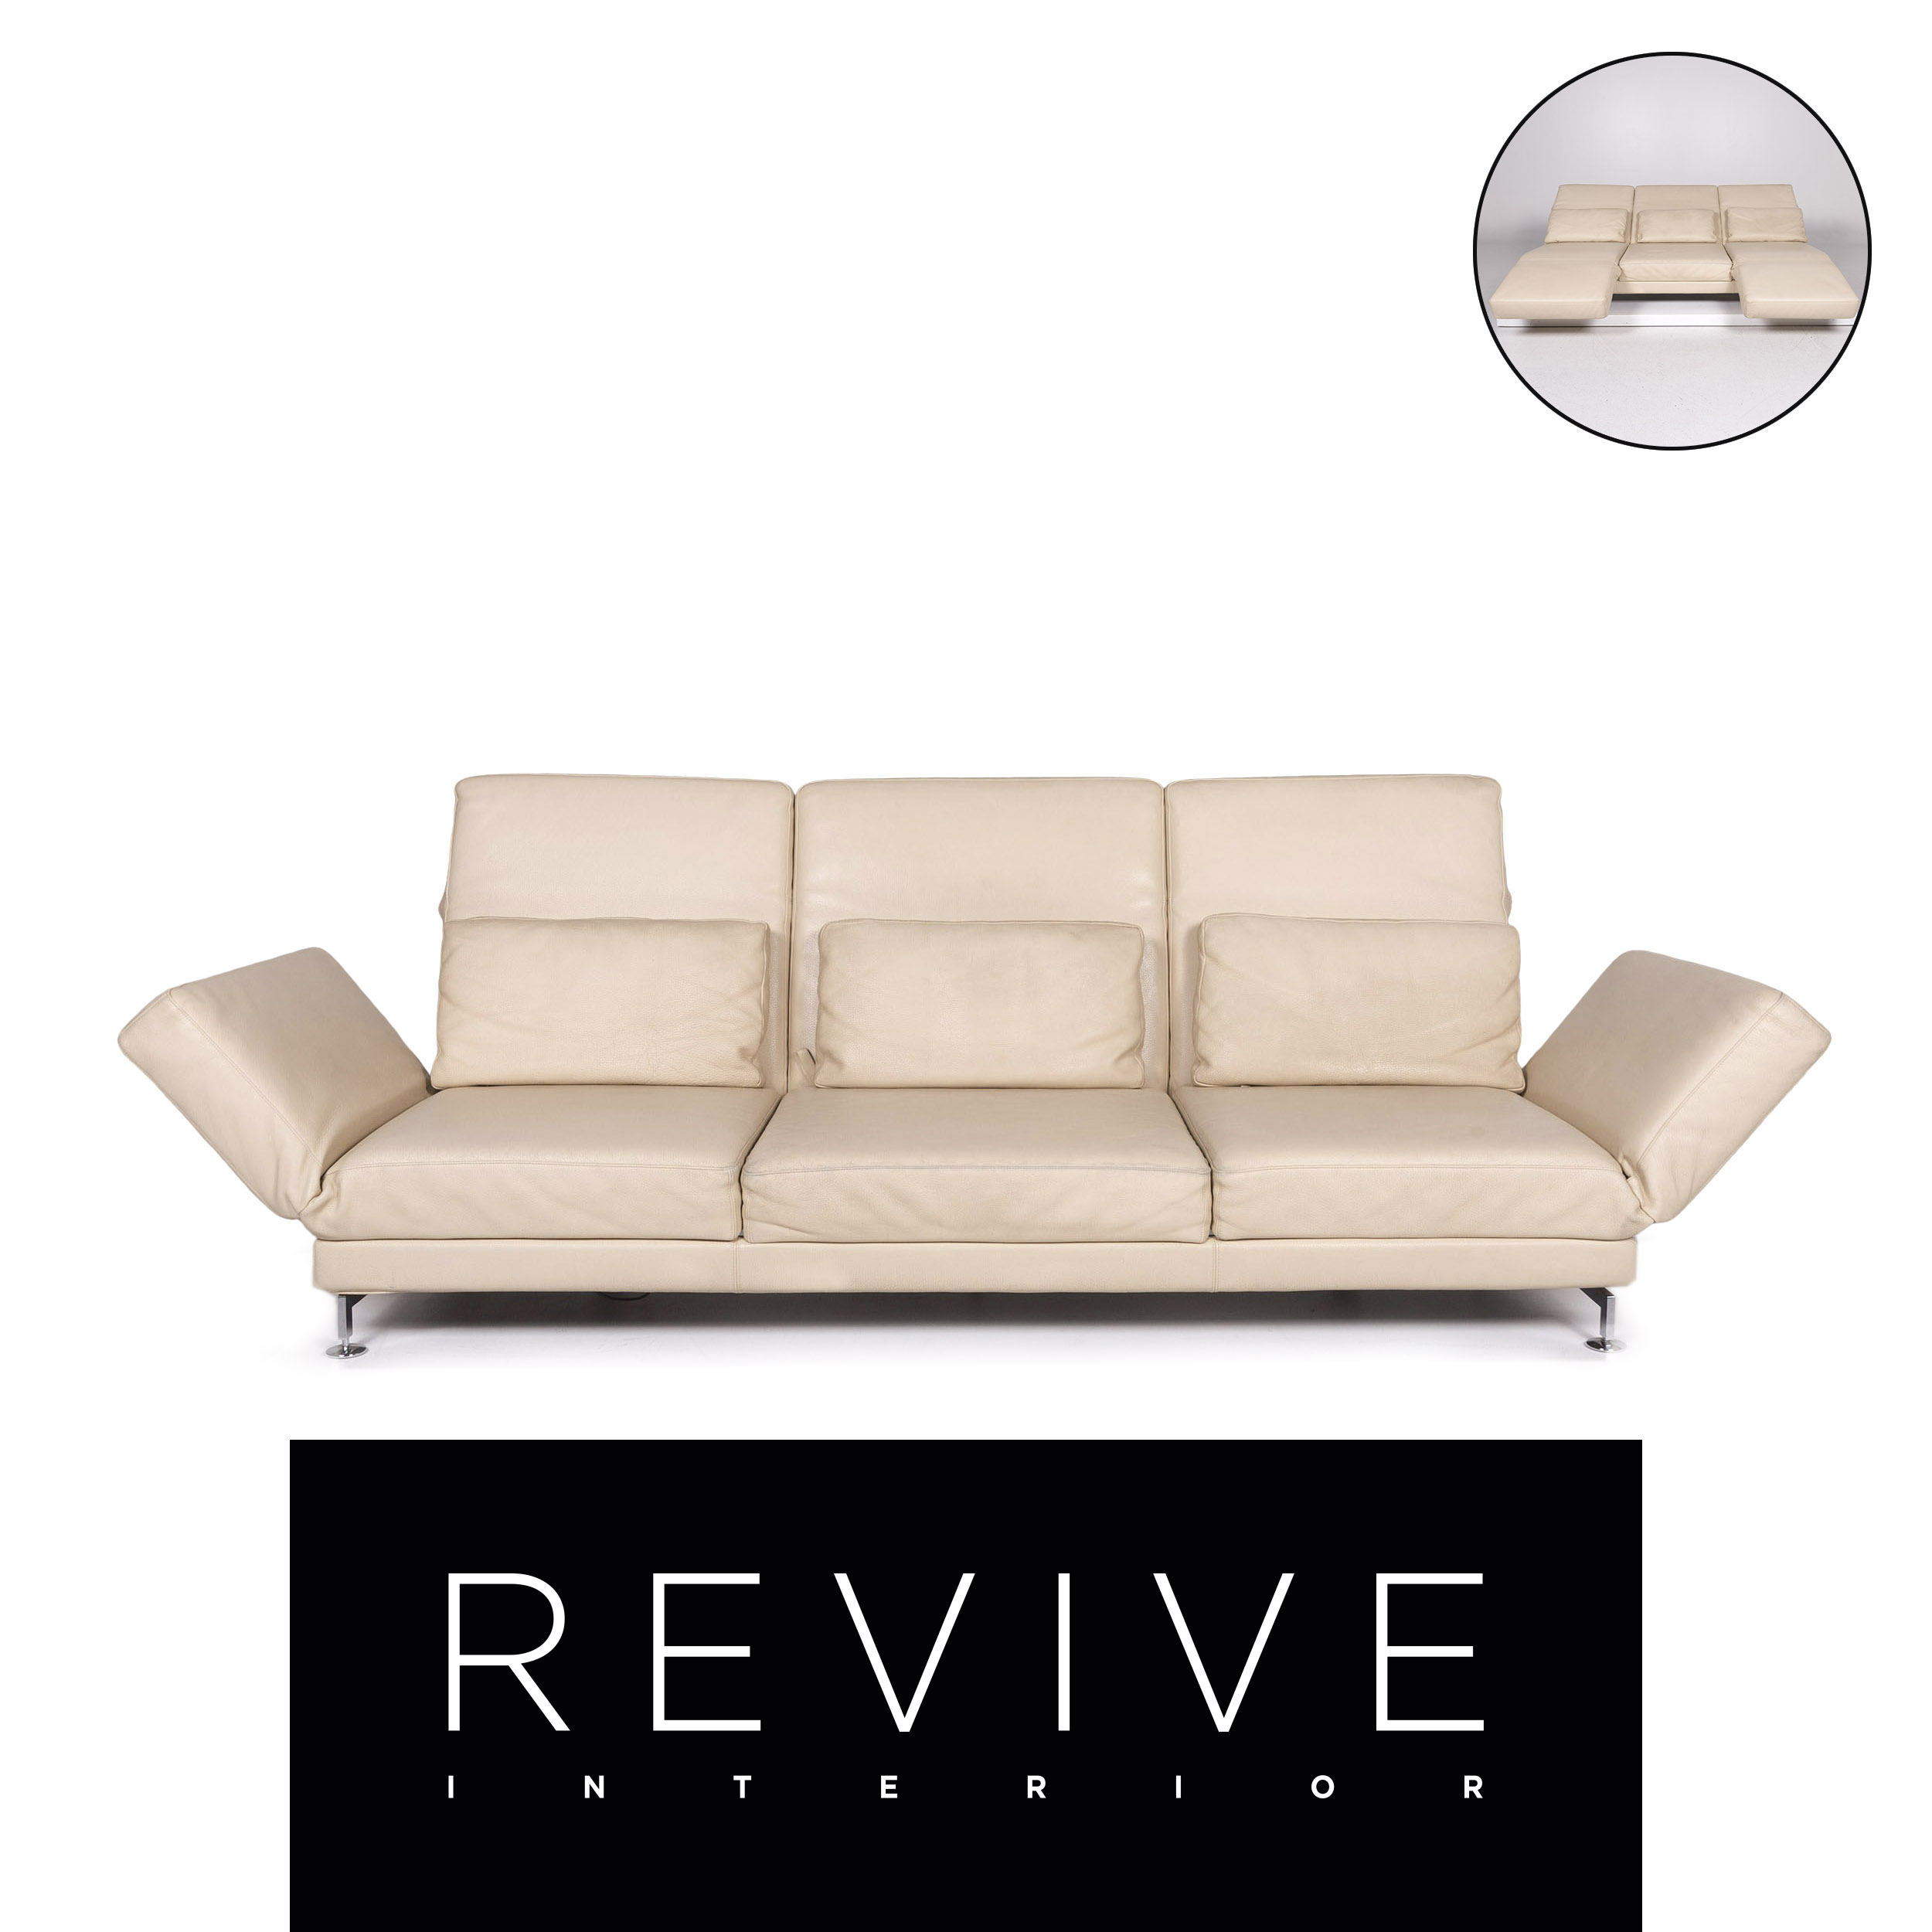 Ebay Sofa Kaufen Brühl & Sippold Moule Leather Sofa Beige Three-seater Relaxfunktion Function | Ebay